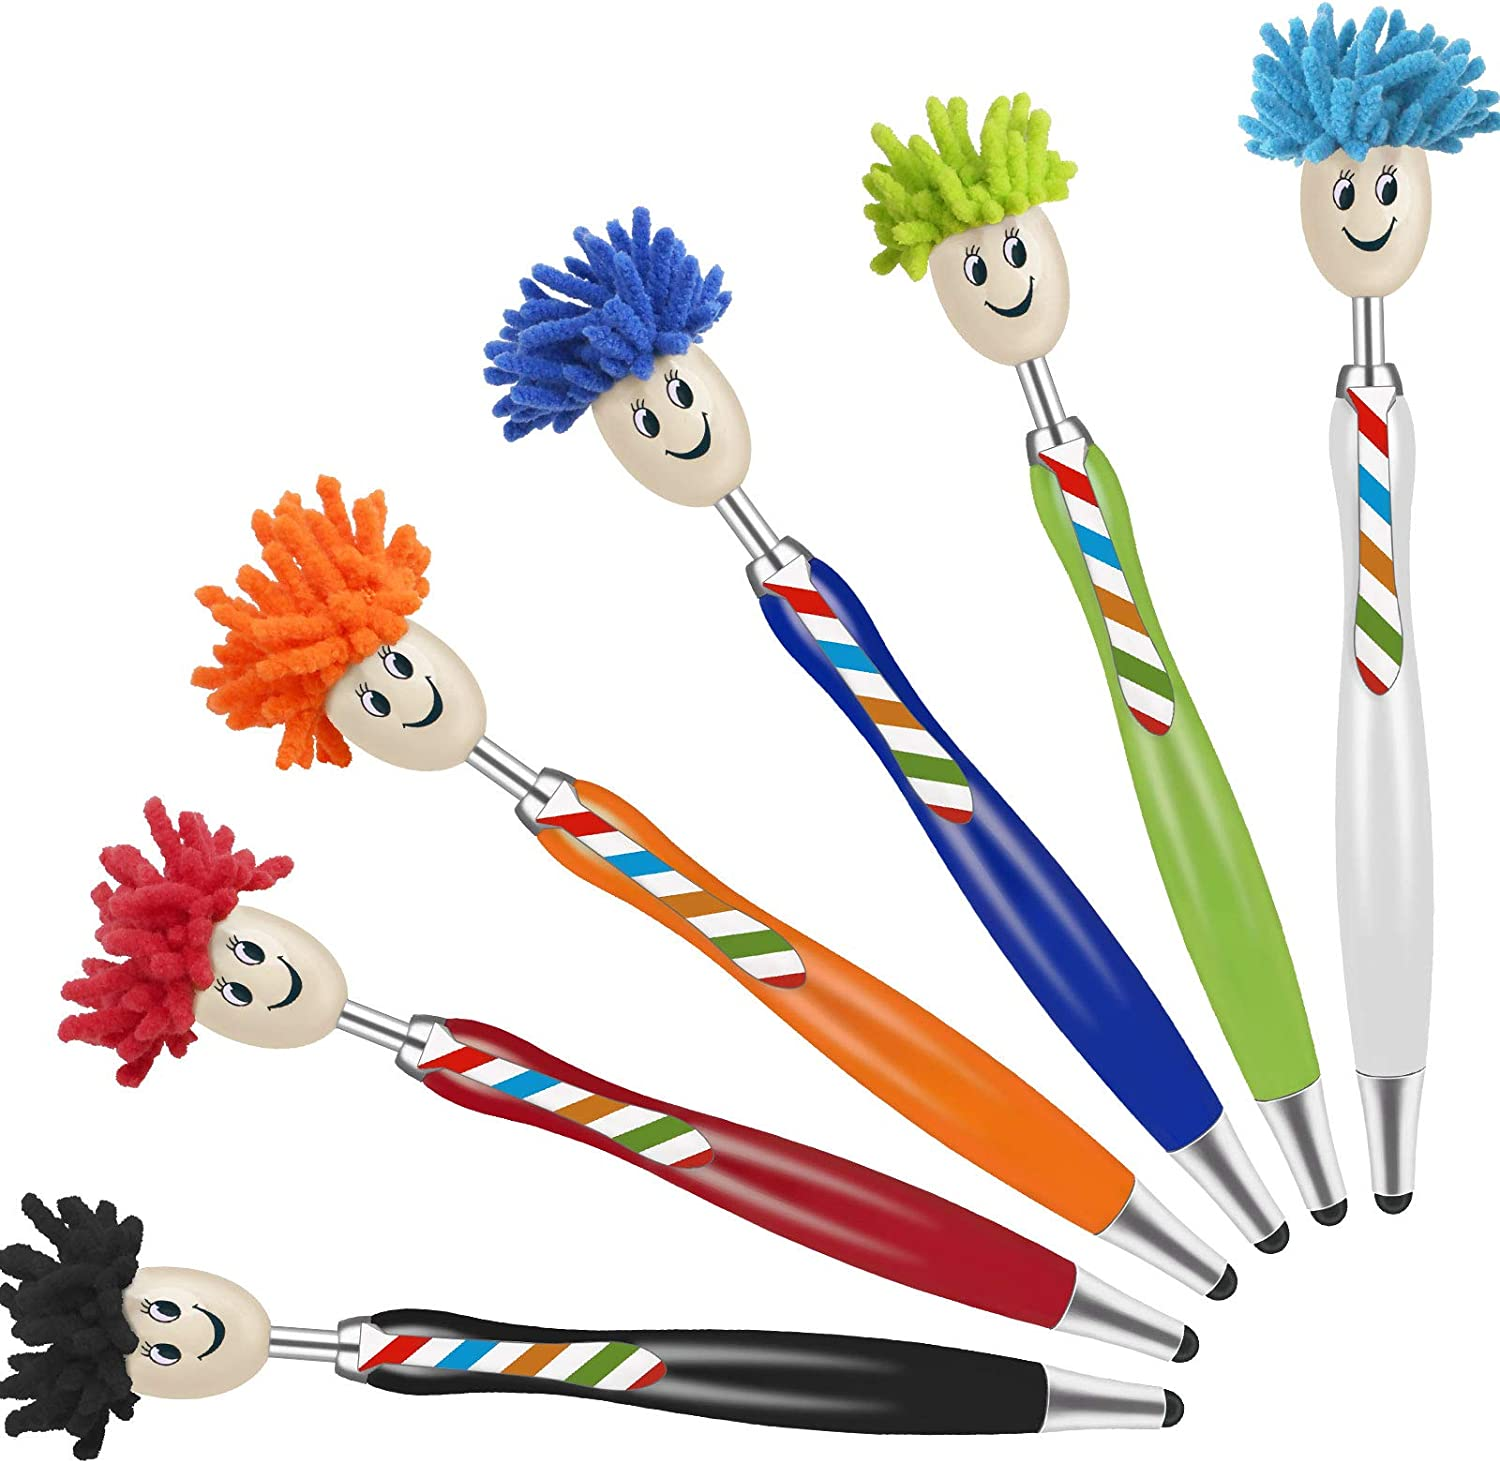 Stylus Pens for Touch Screens, StylusHome 6 Pieces Capacitive Stylus Kids Pens with 12 Replaceable Rubber Tips for iPad iPhone Tablets Samsung Galaxy All Universal Touch Screen Devices